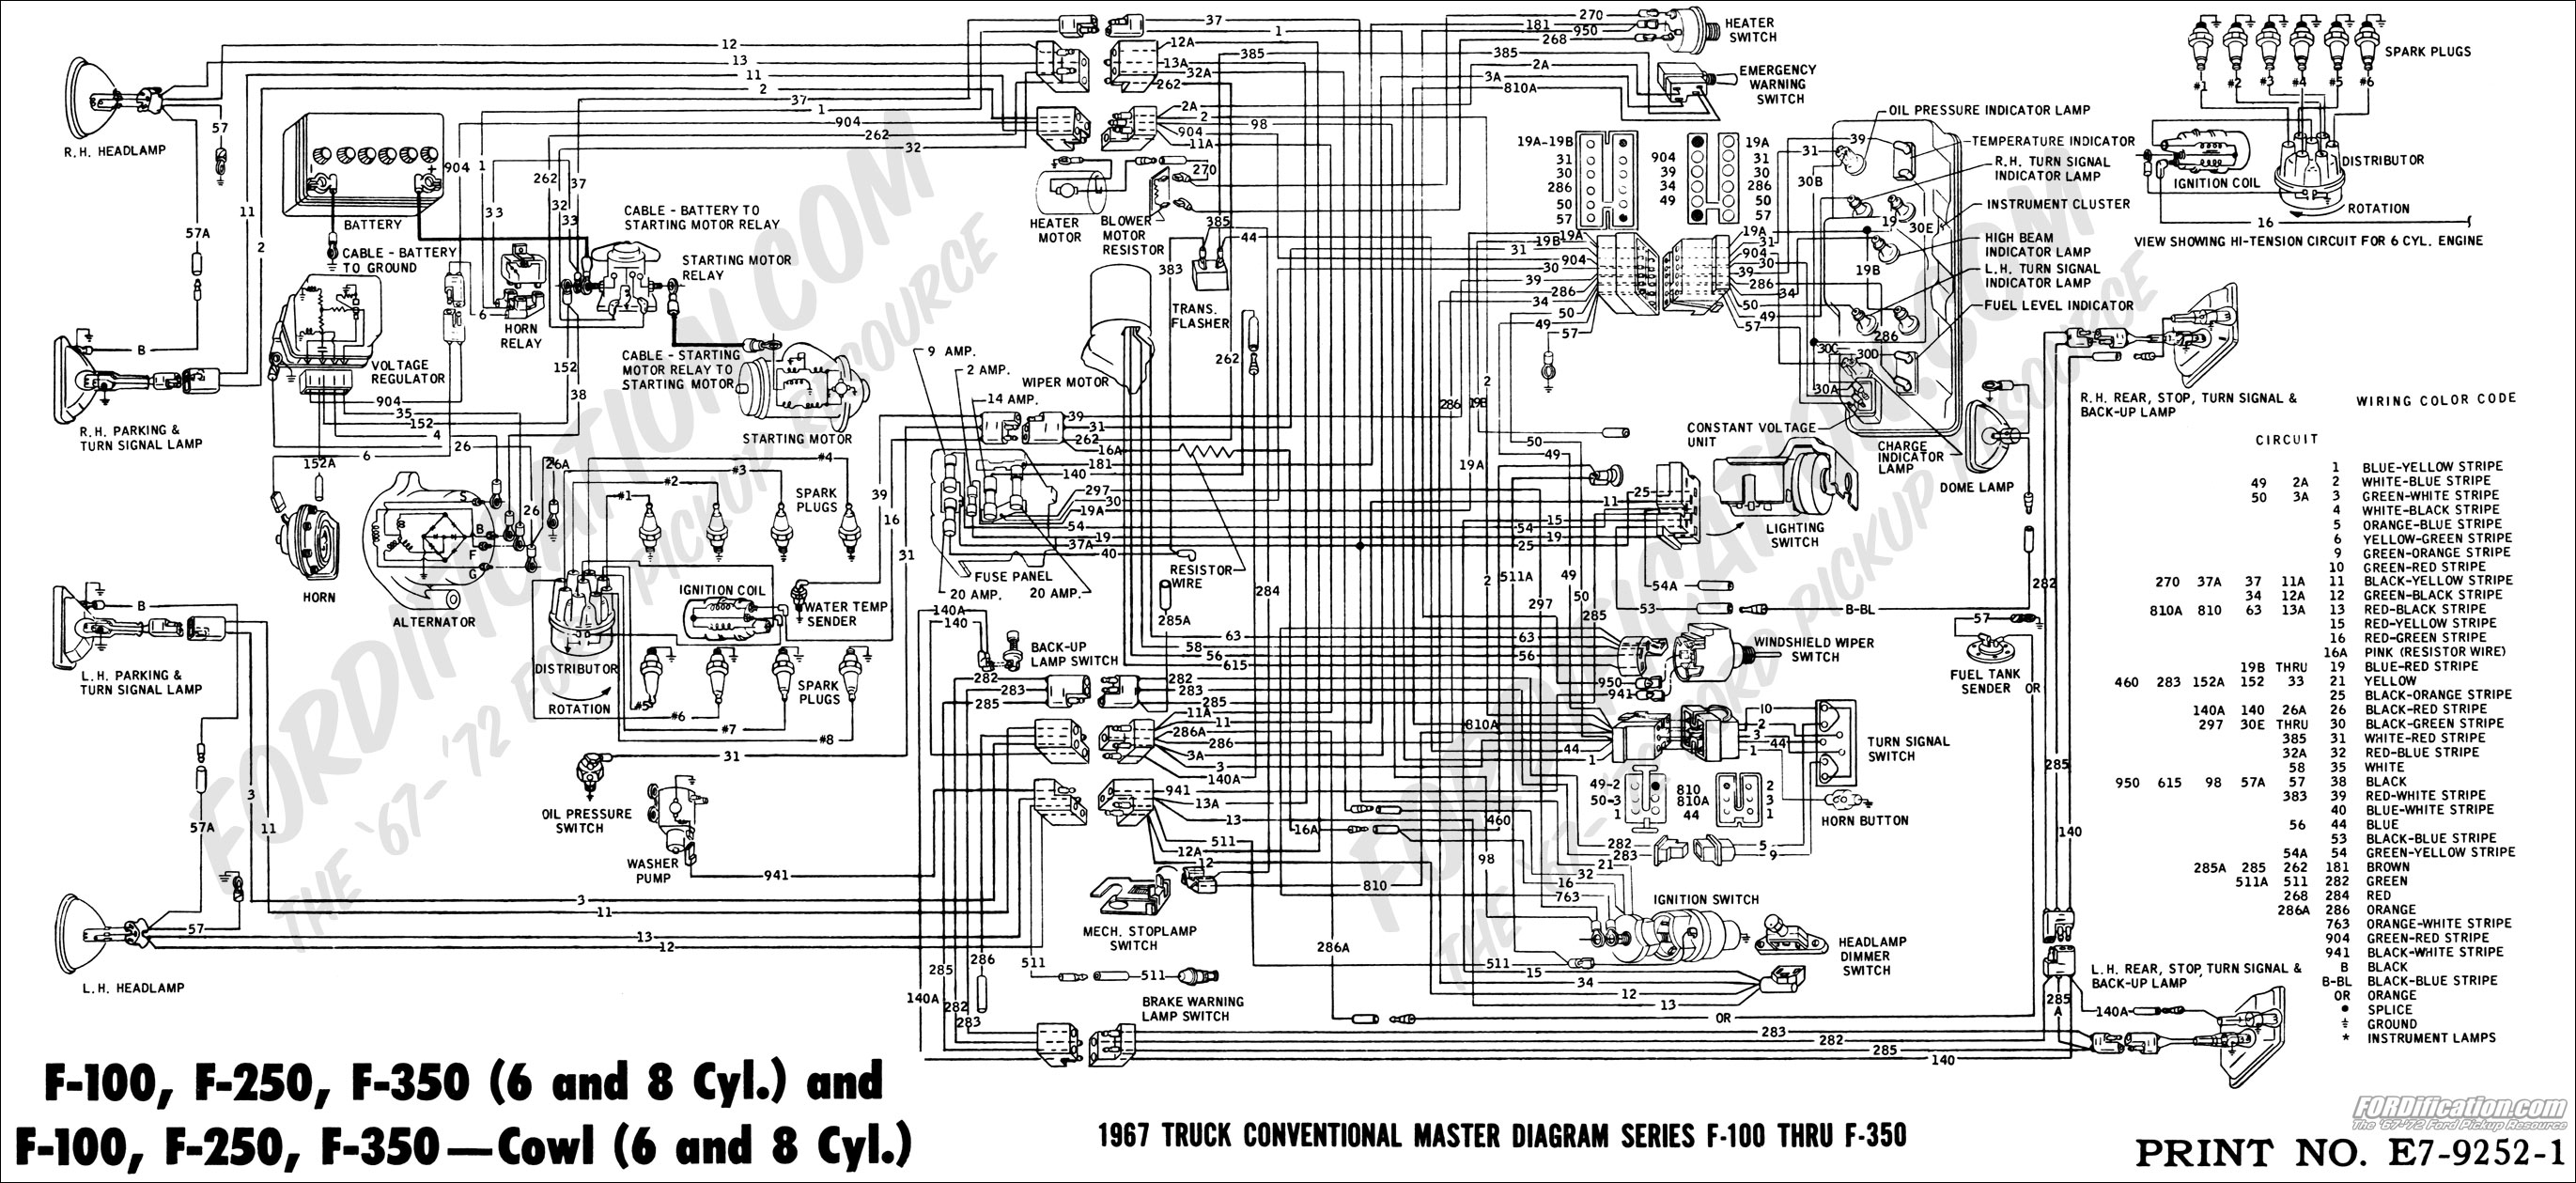 67masterdiagram 1985 ford ranger wiring diagram ford ranger fuel system diagram 1988 ford ranger wiring diagram at fashall.co